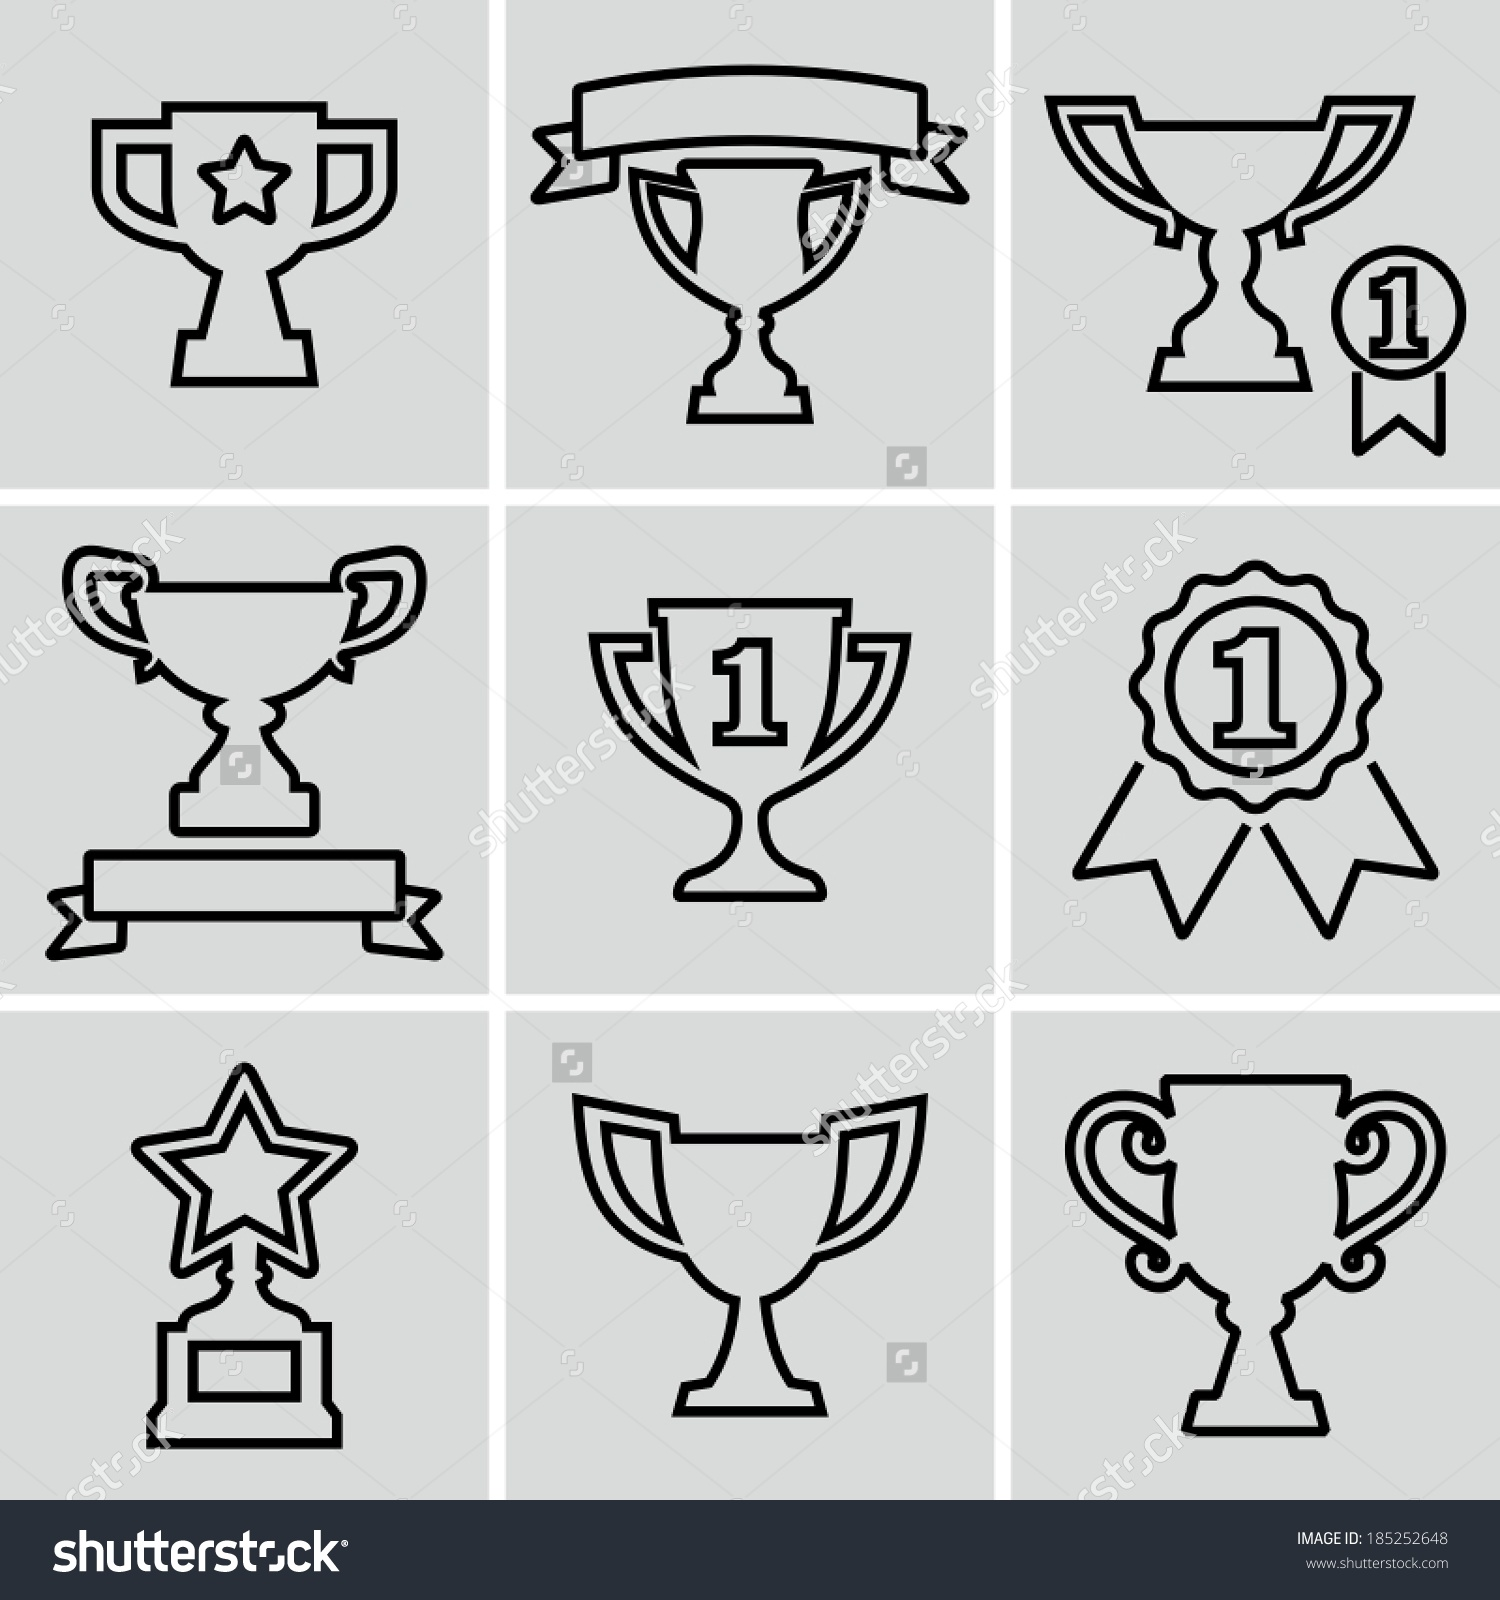 Trophy Icons Strokes Not Expanded Outlines Stock Vector 185252648.